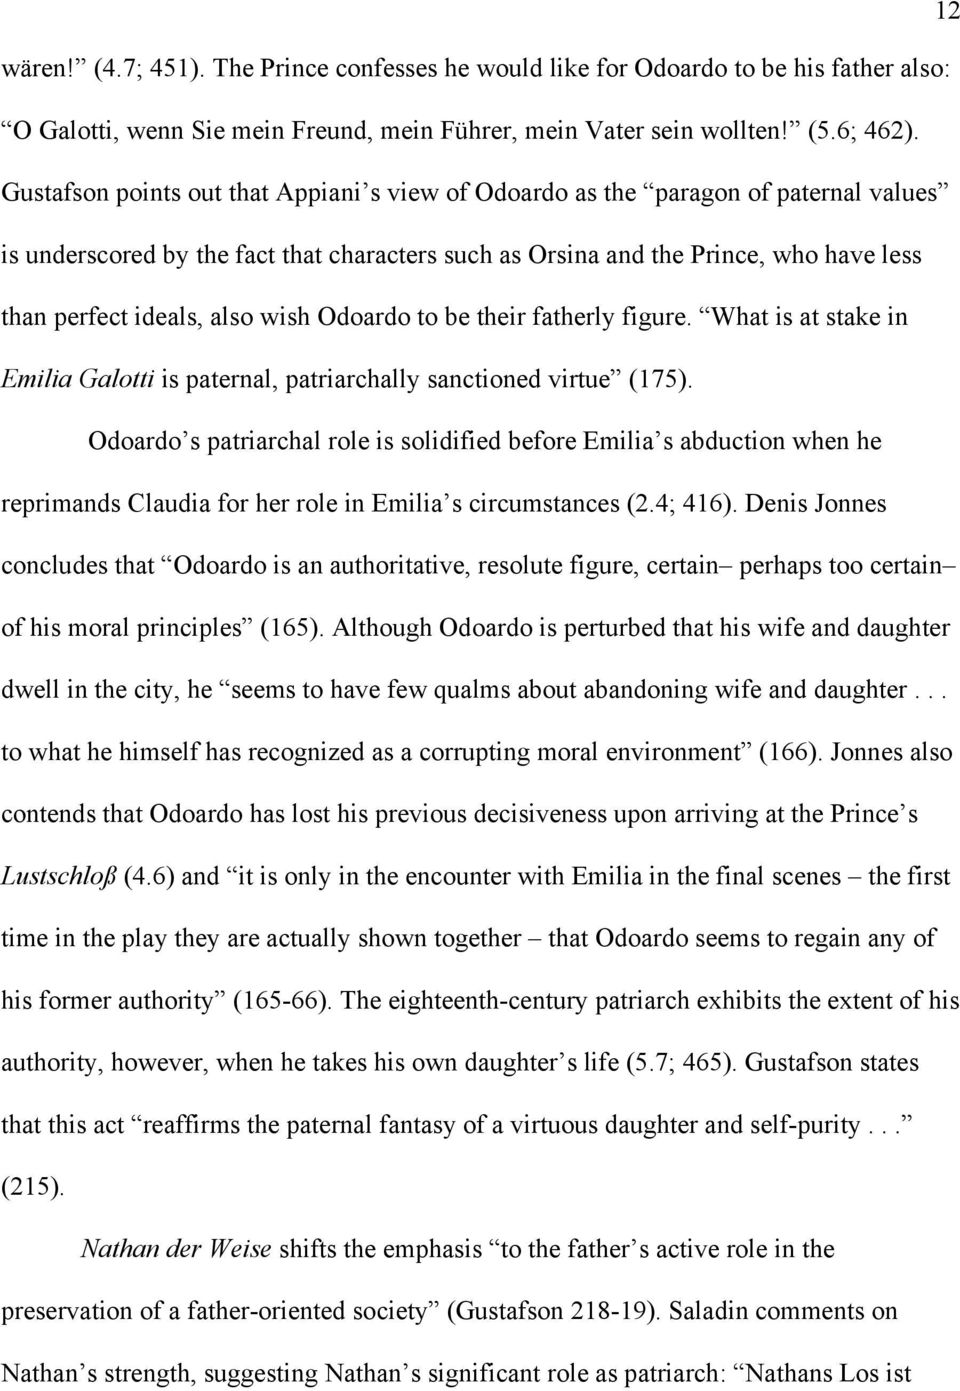 wish Odoardo to be their fatherly figure. What is at stake in Emilia Galotti is paternal, patriarchally sanctioned virtue (175).